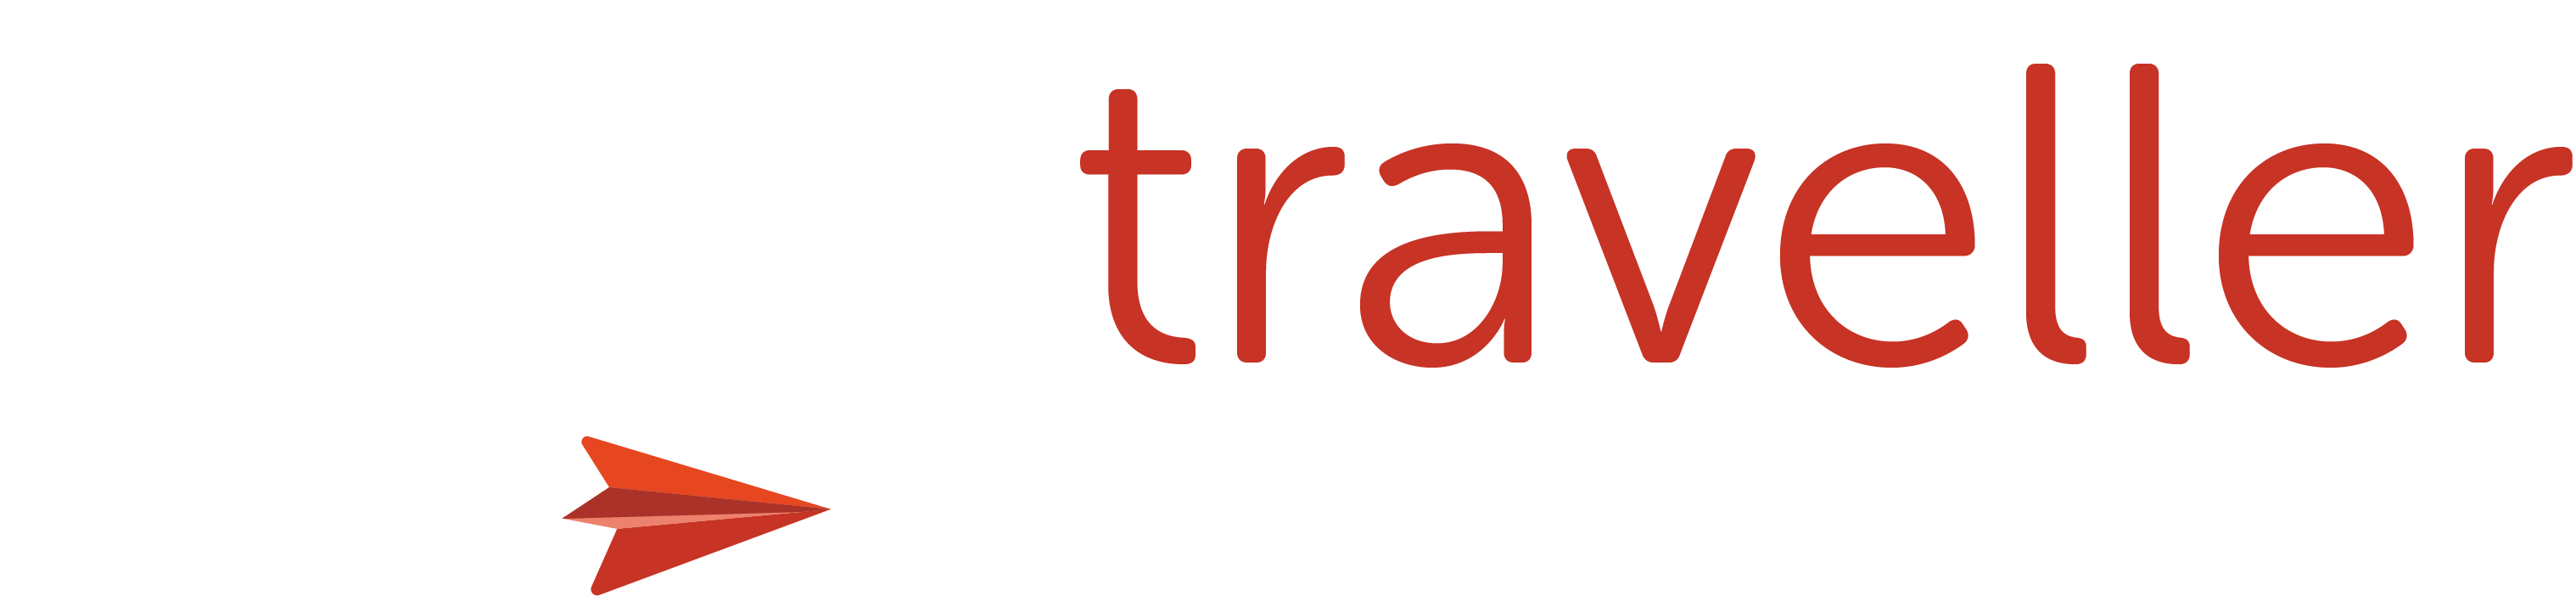 logo andtraveller there is always a traveller within you